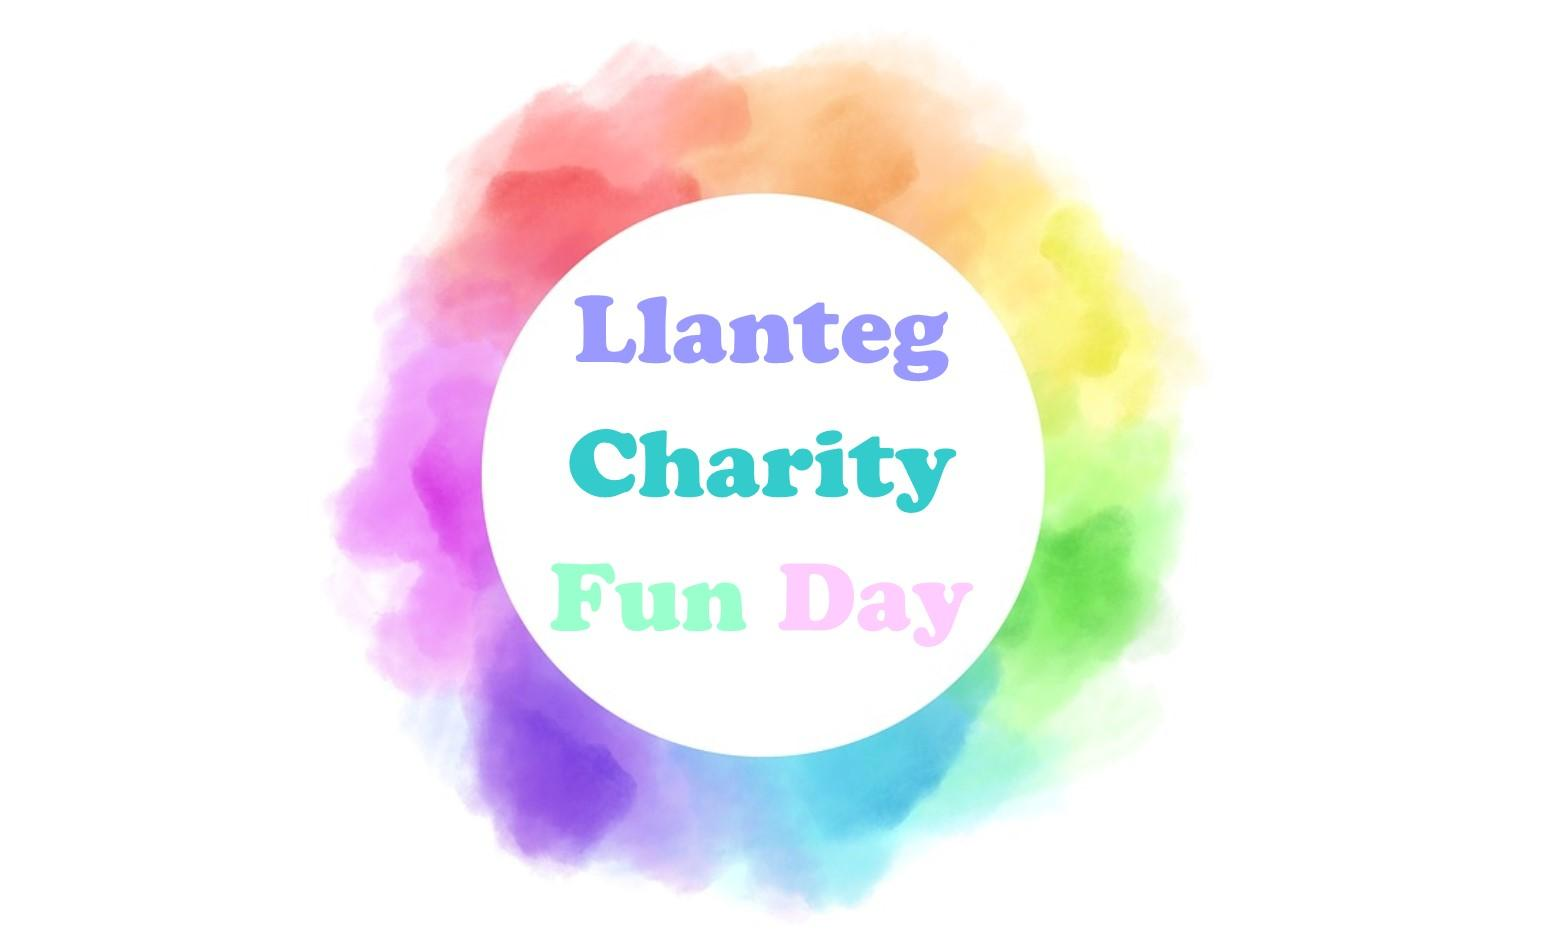 Llanteg Charity Fun Day